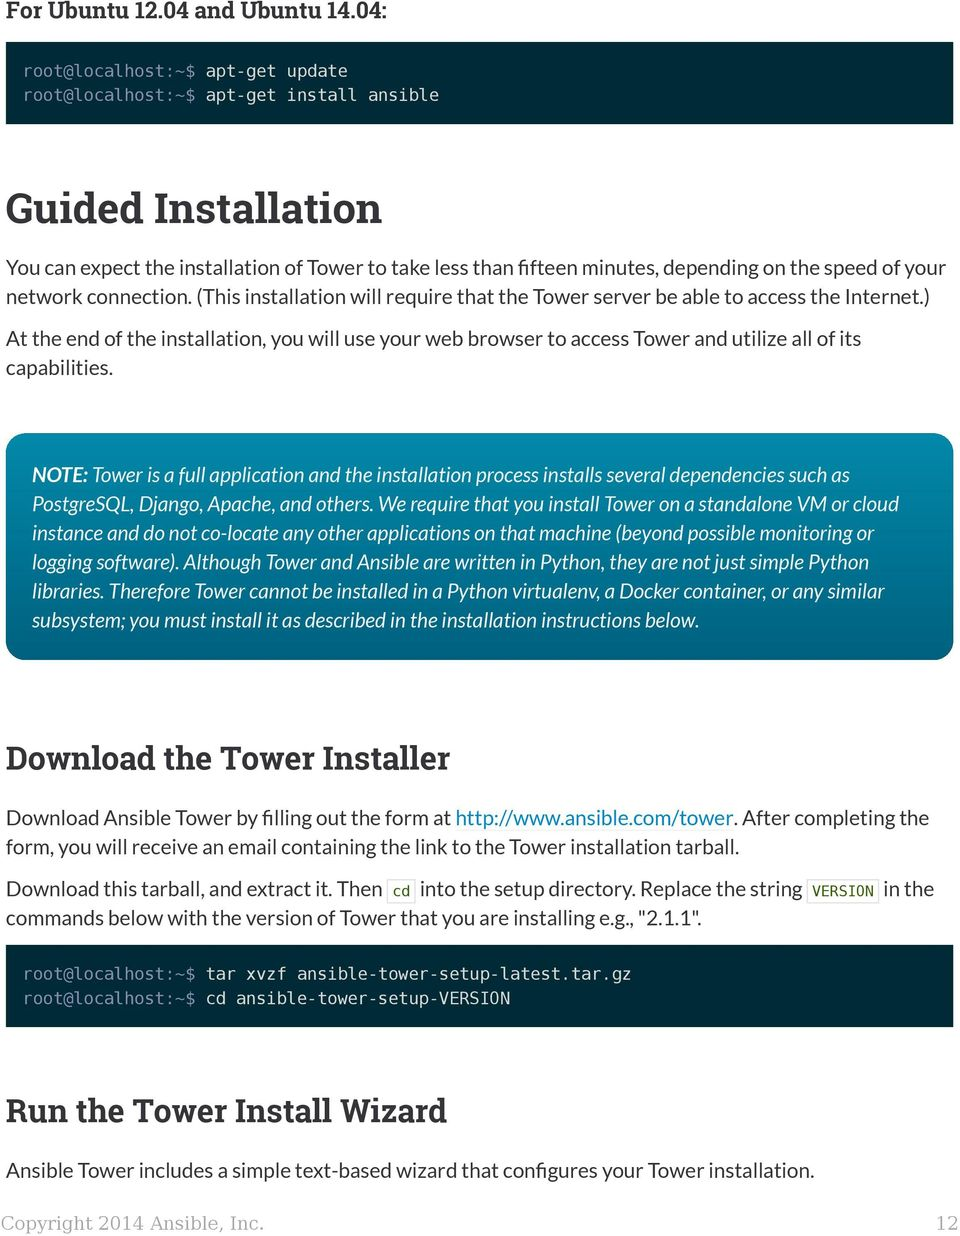 Ansible Tower User Guide - PDF